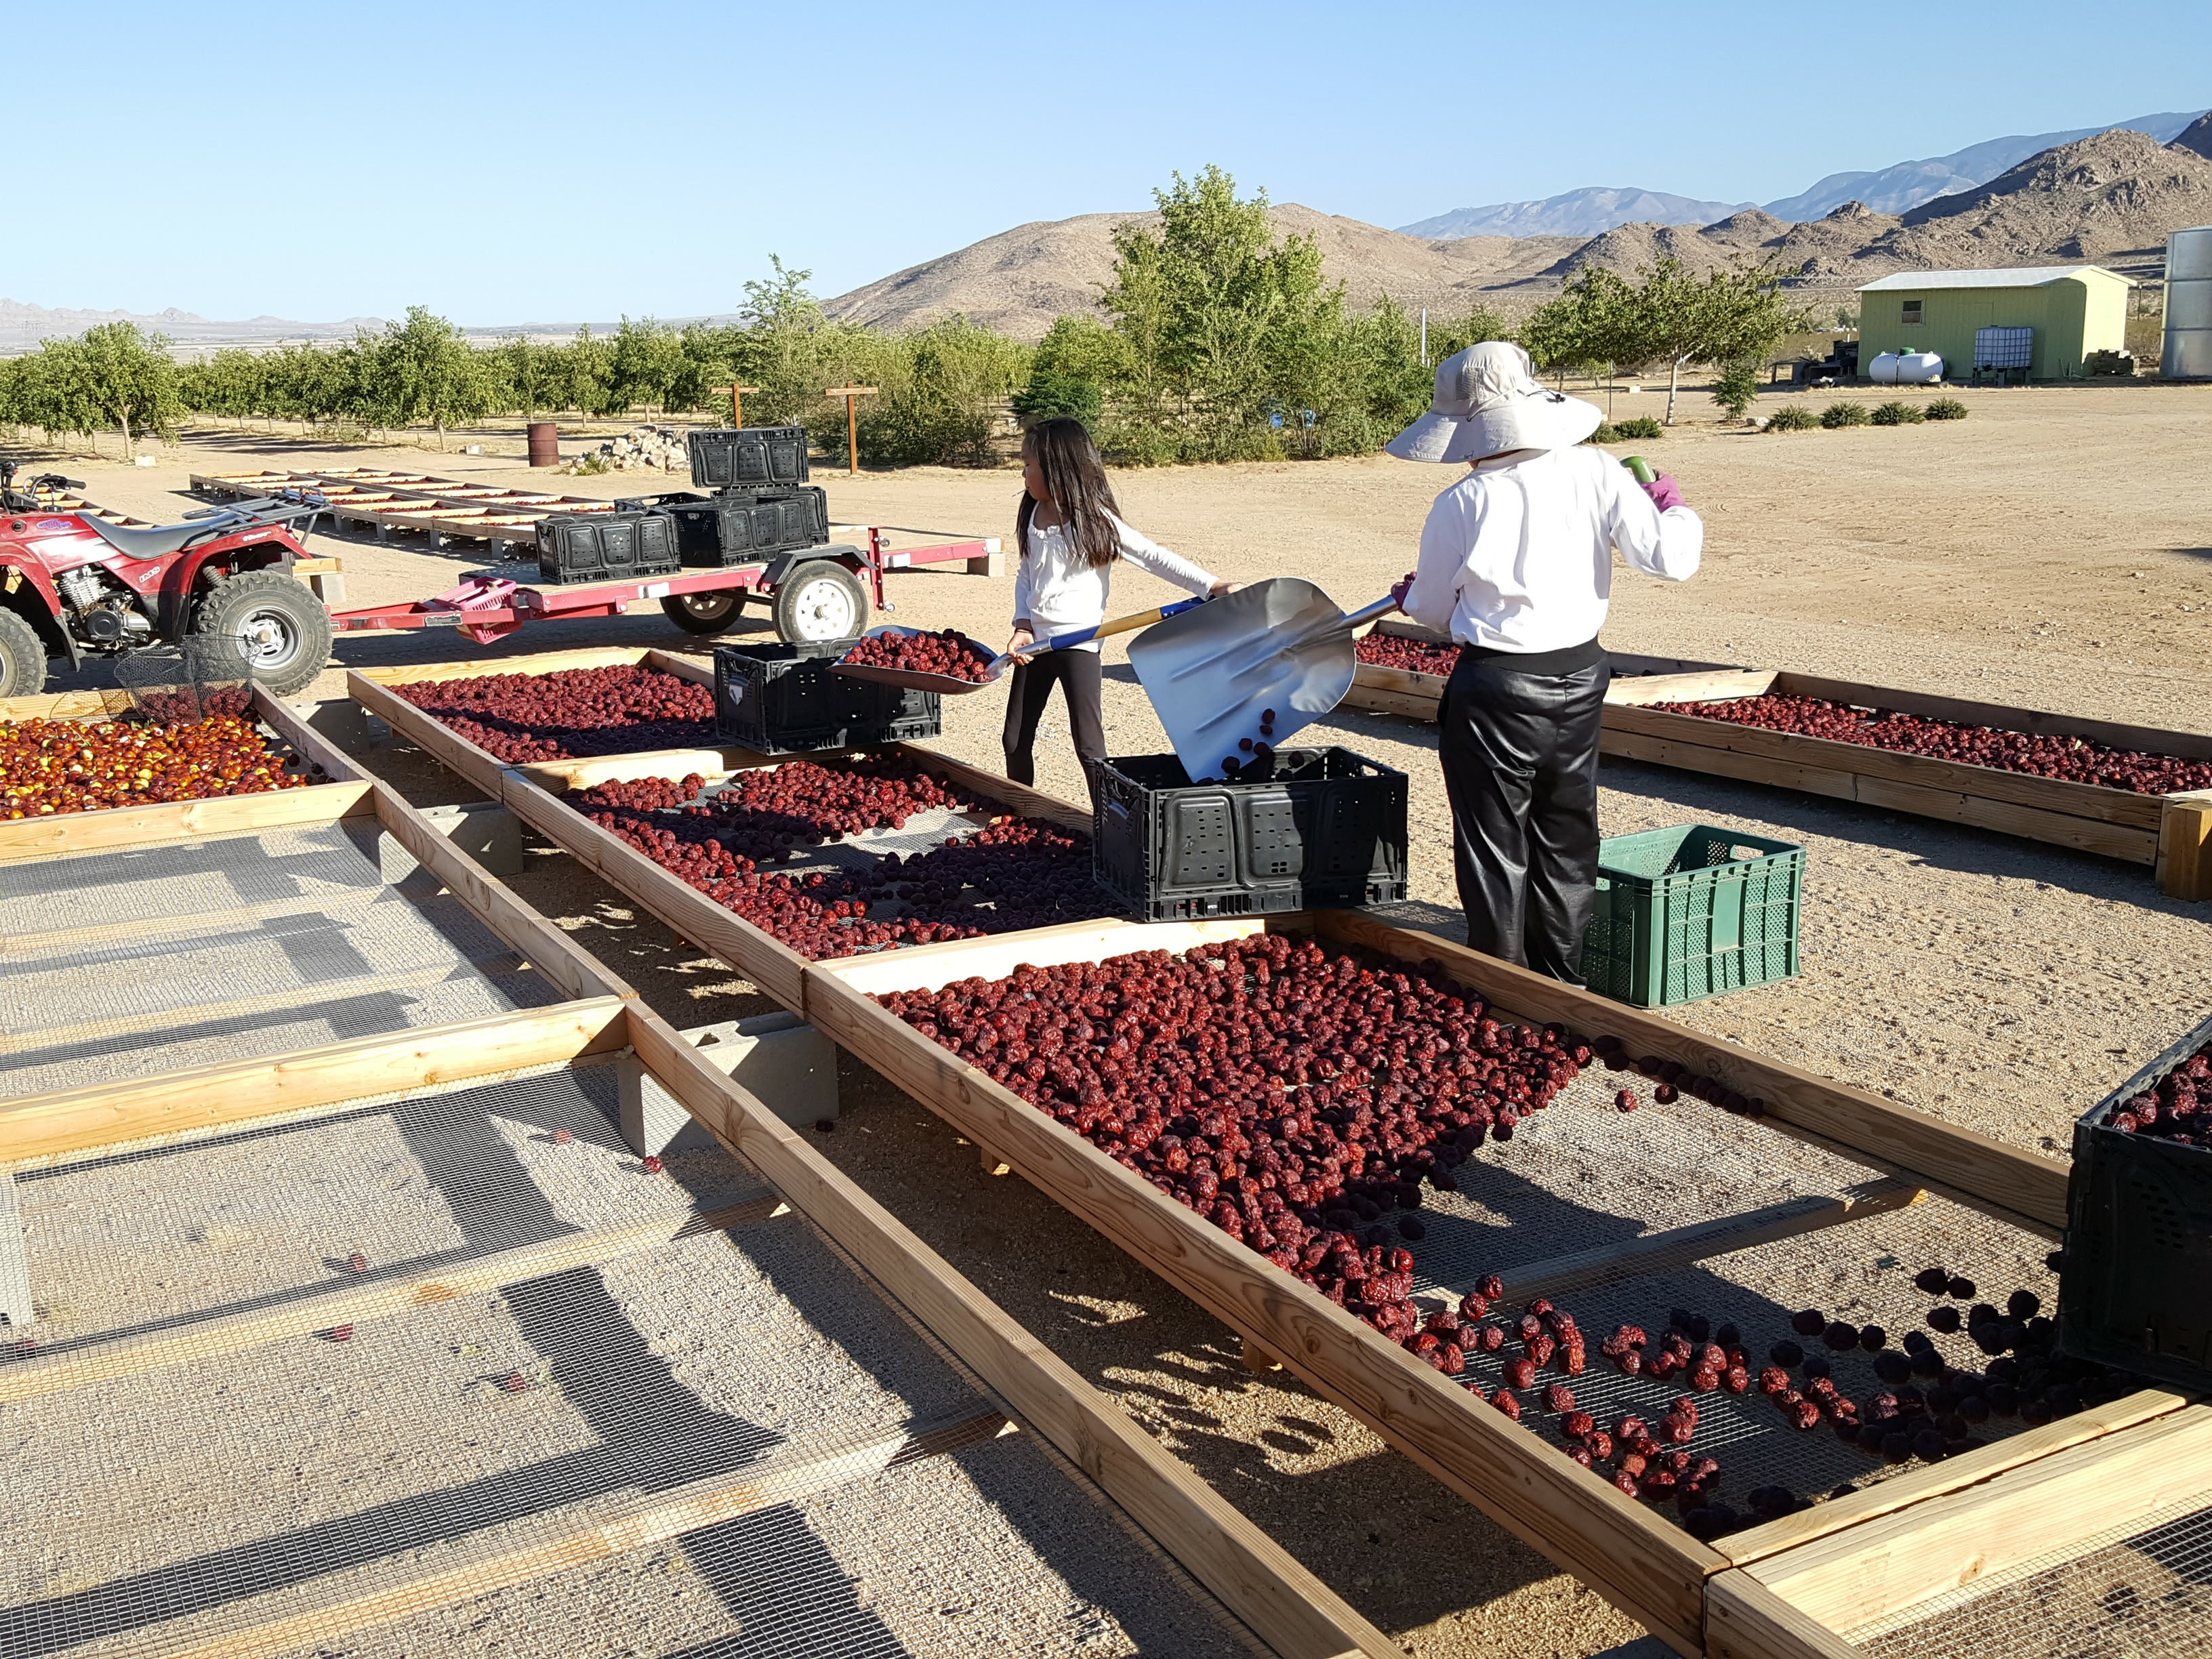 The scene at David Paeng's Serenity Farm in Lucerne Valley, Calif., where he grows jujubes.